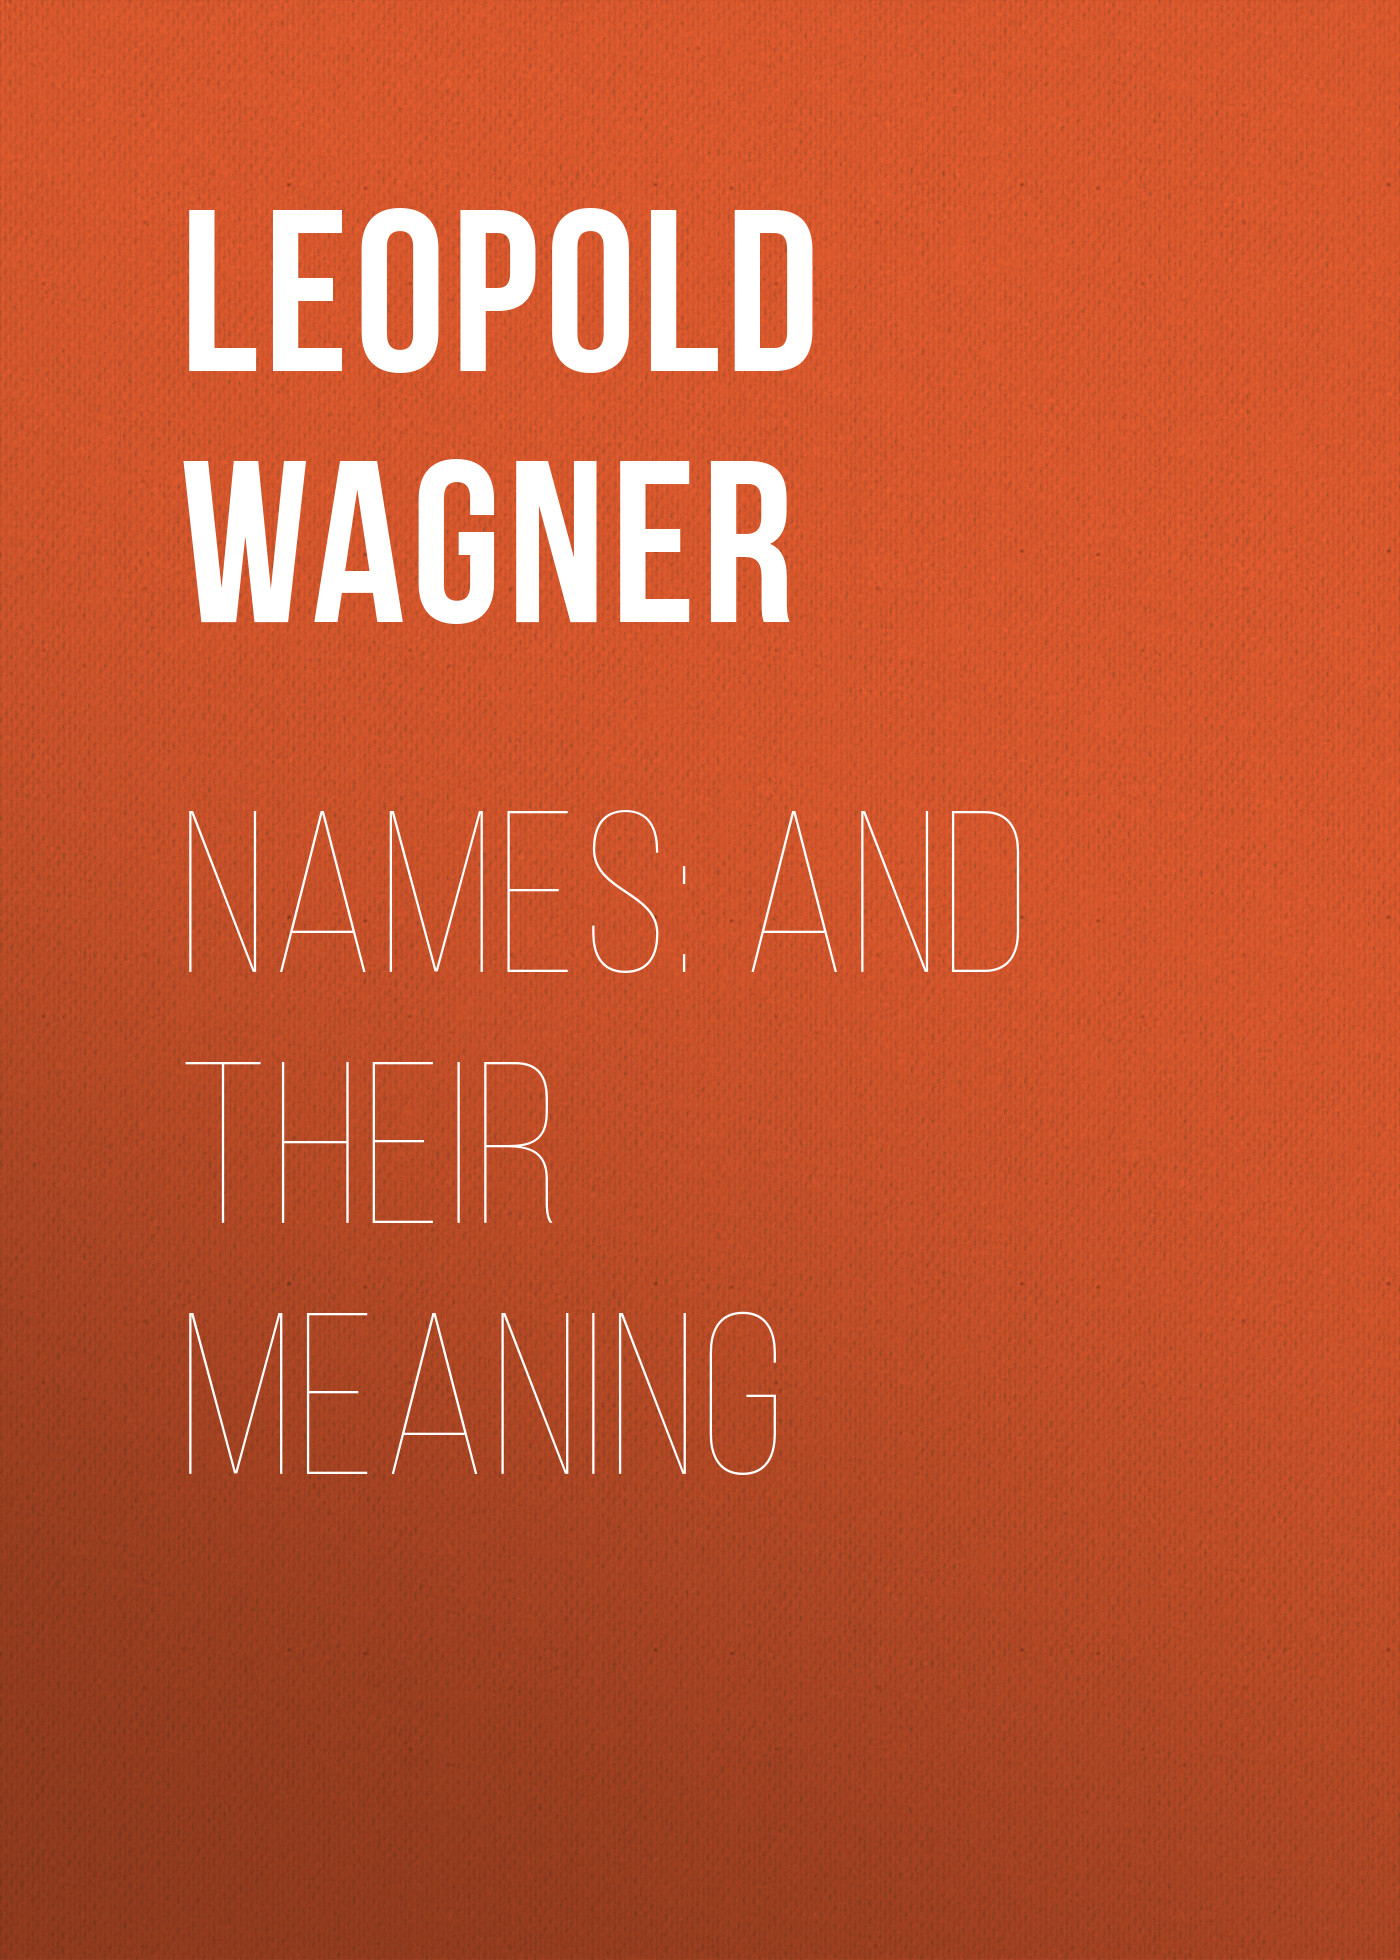 Leopold Wagner Names: and Their Meaning consciousness and meaning